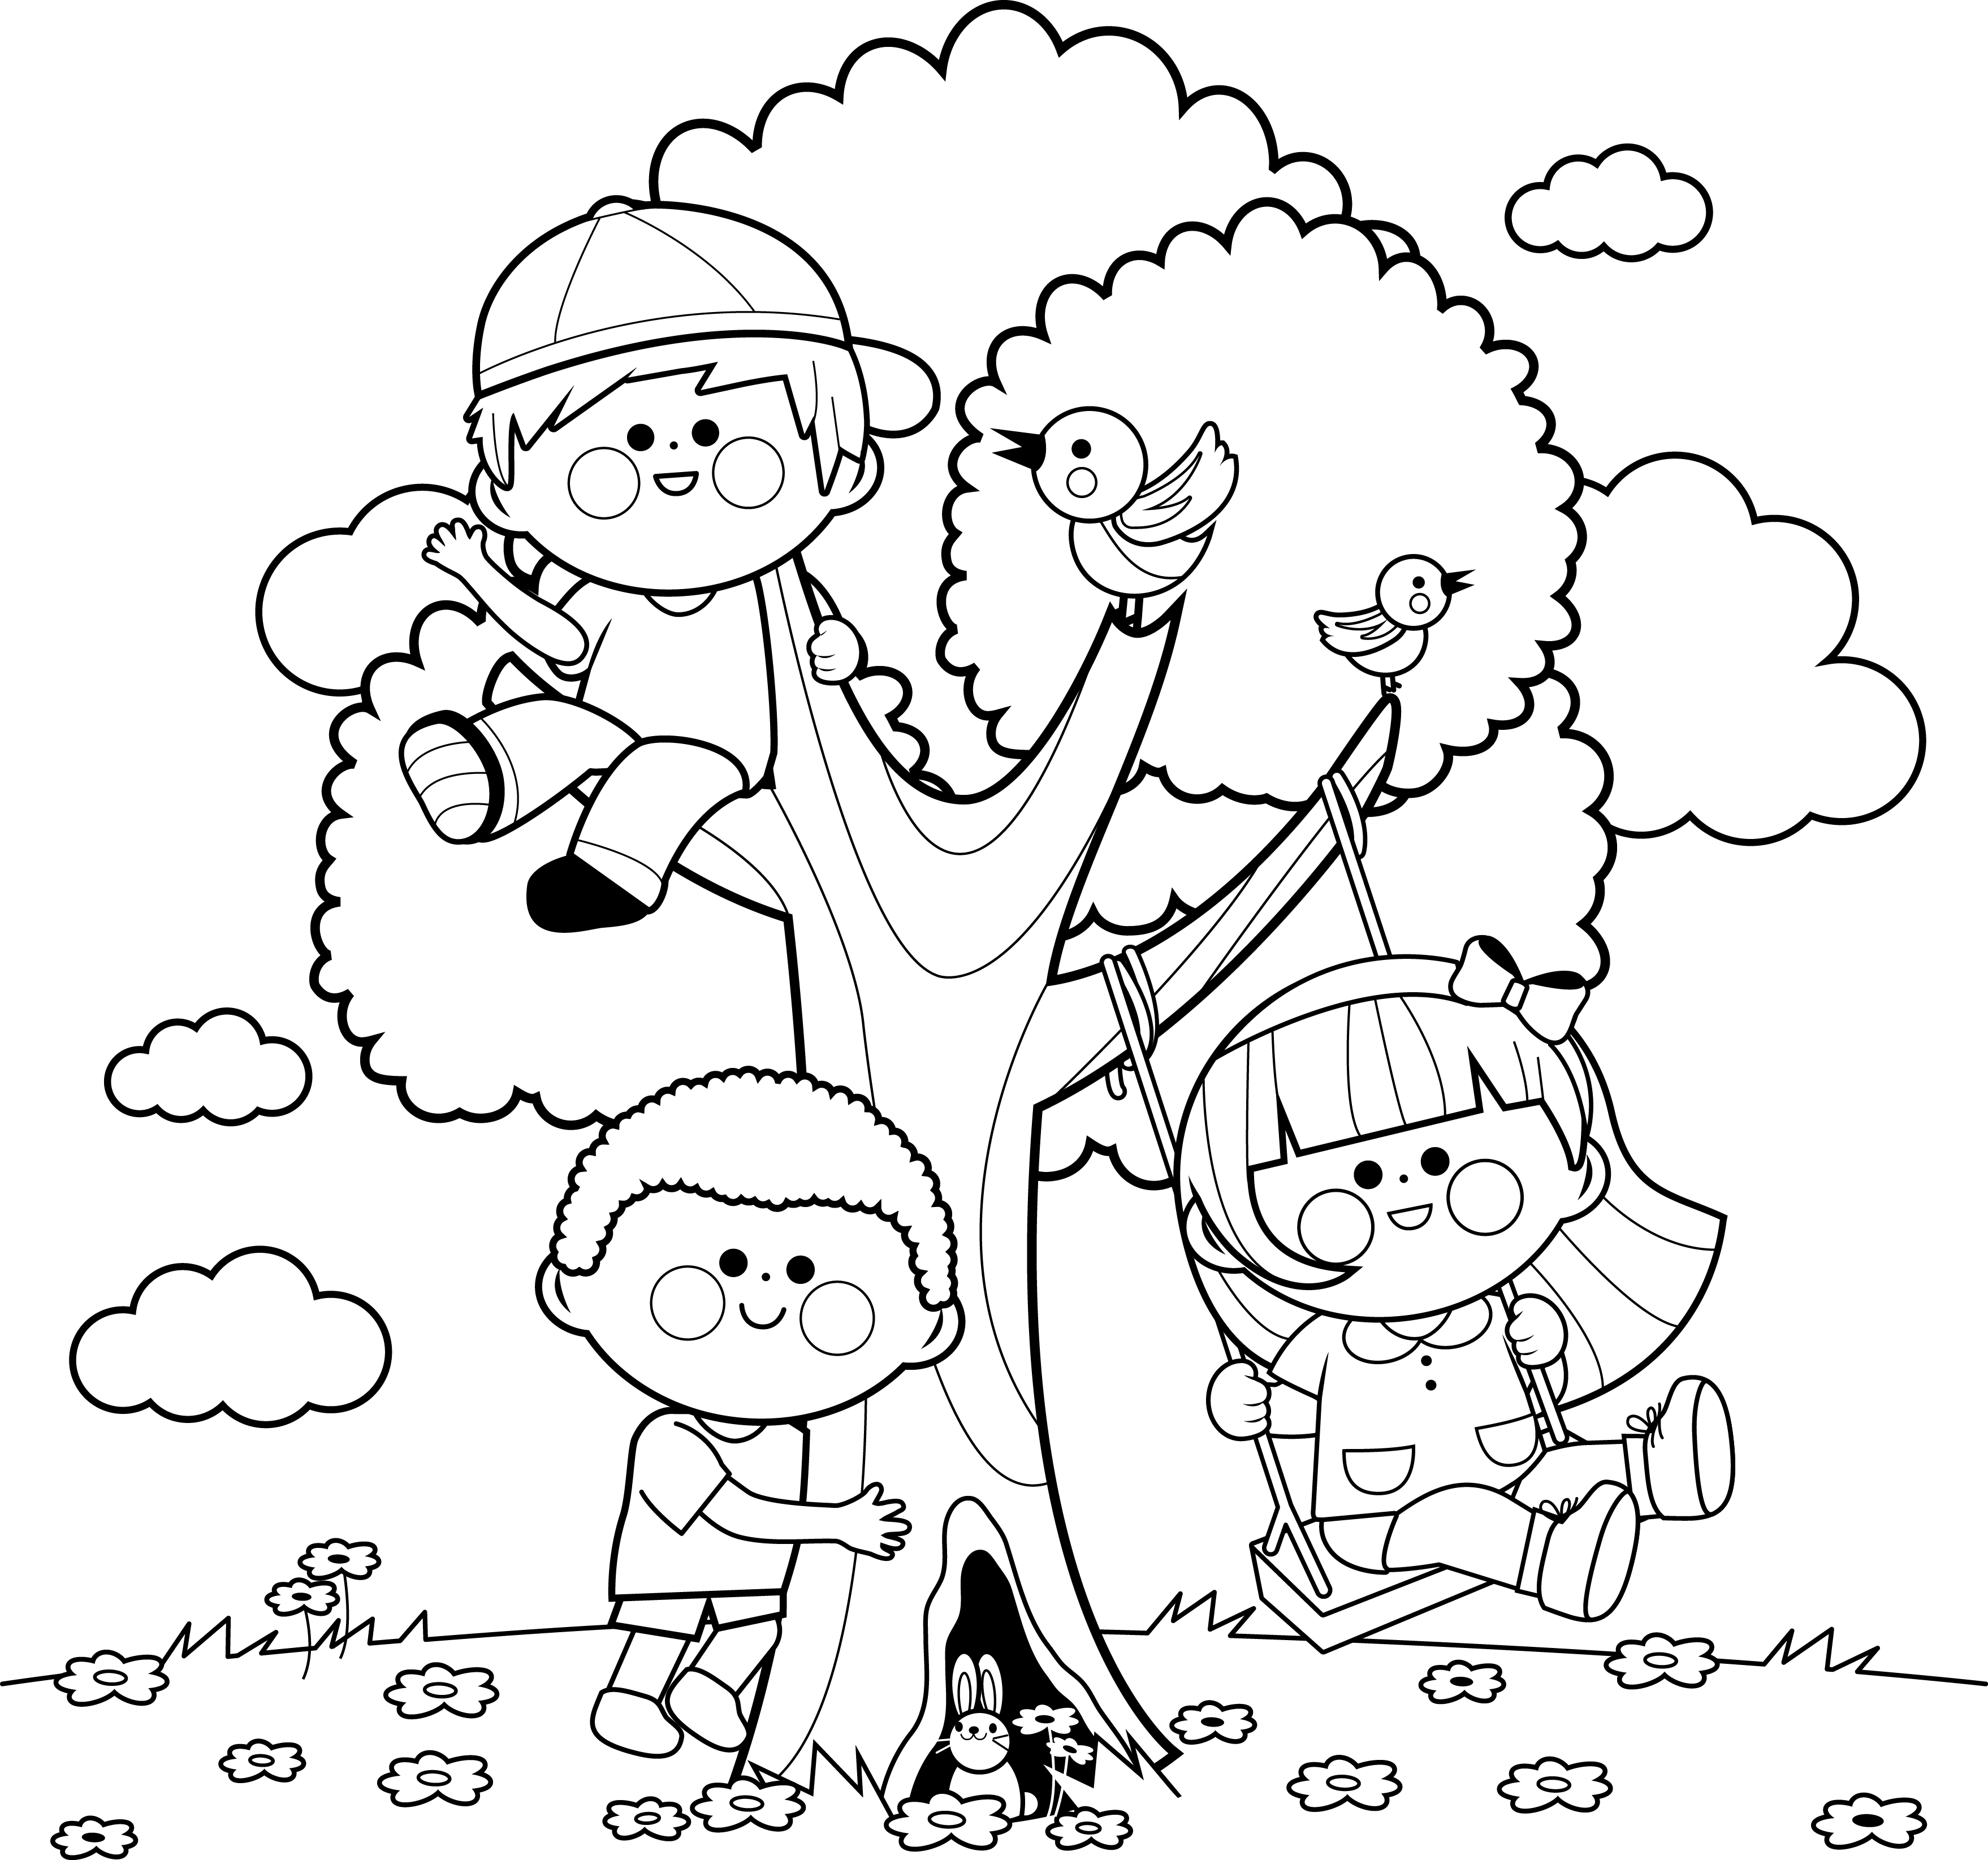 Printable Coloring Pages For Contest Printable Best Free